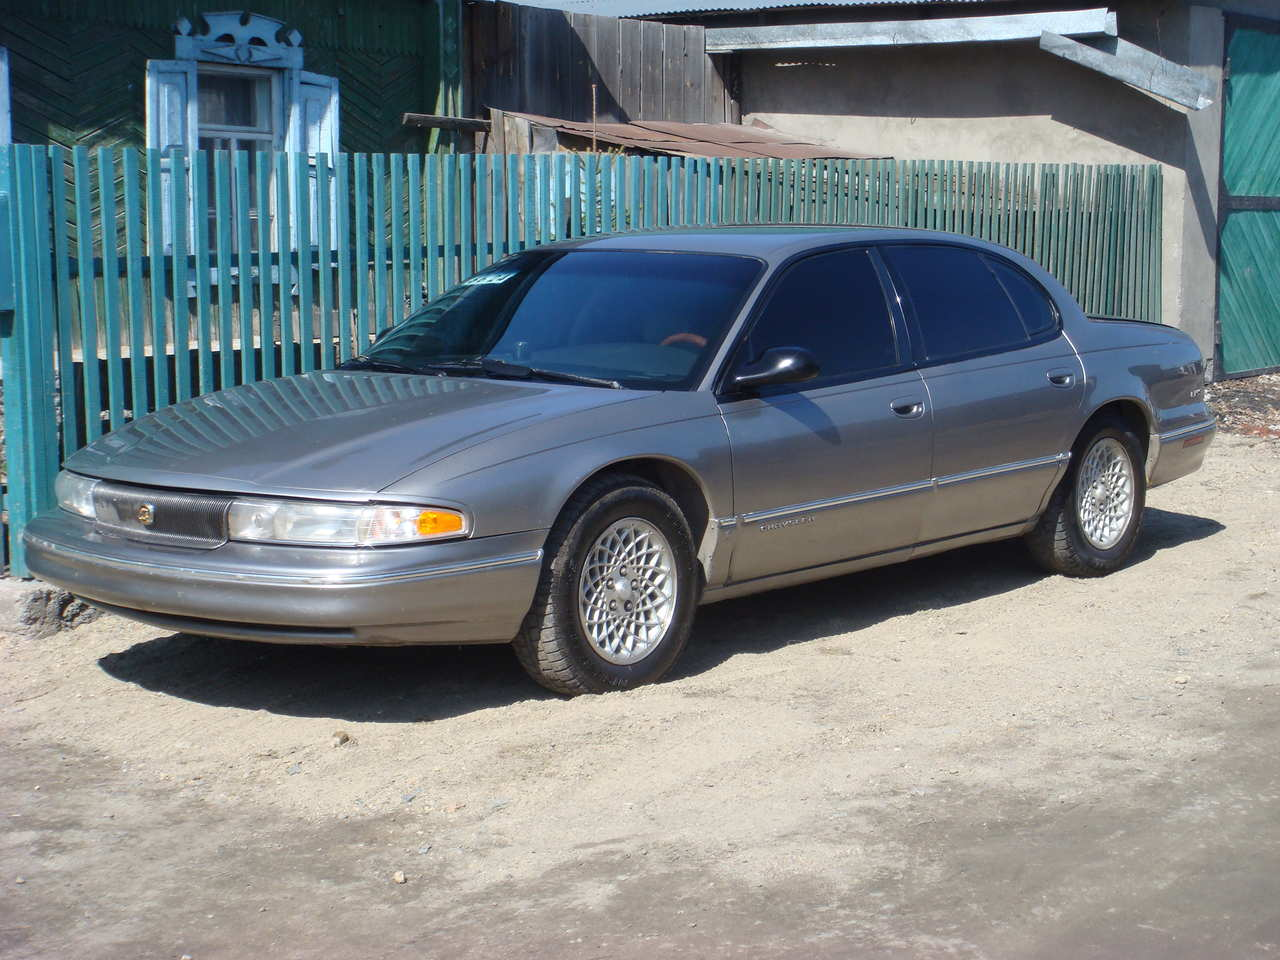 service manual repair manual for a 1996 chrysler lhs. Black Bedroom Furniture Sets. Home Design Ideas